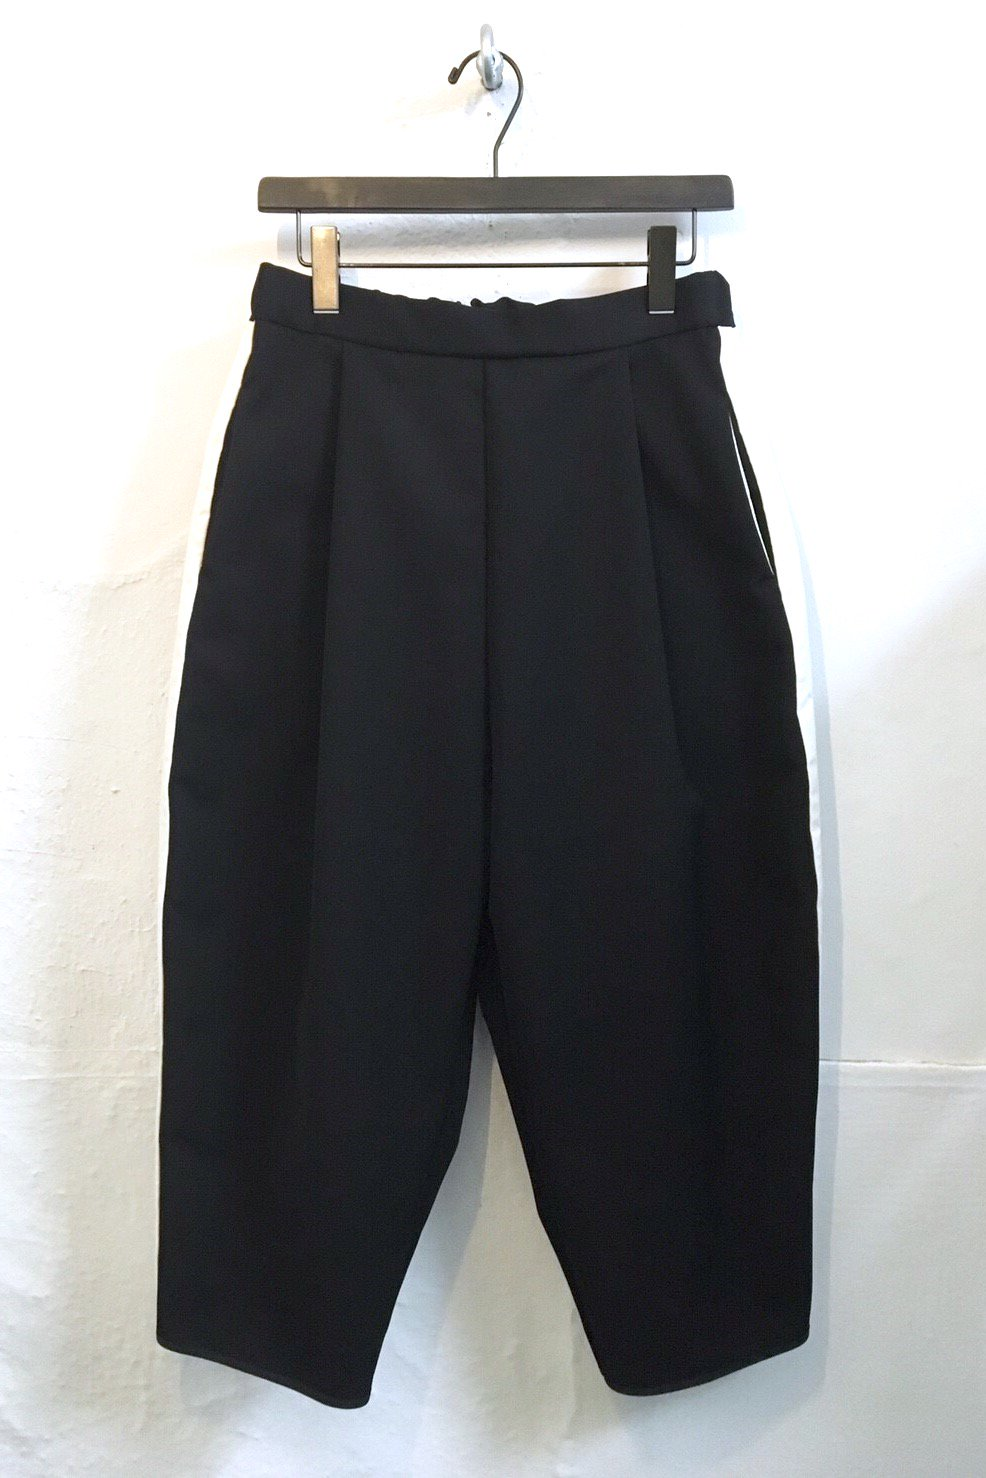 LONG PANTS<div>-BLACK-</div><img class='new_mark_img2' src='//img.shop-pro.jp/img/new/icons15.gif' style='border:none;display:inline;margin:0px;padding:0px;width:auto;' />